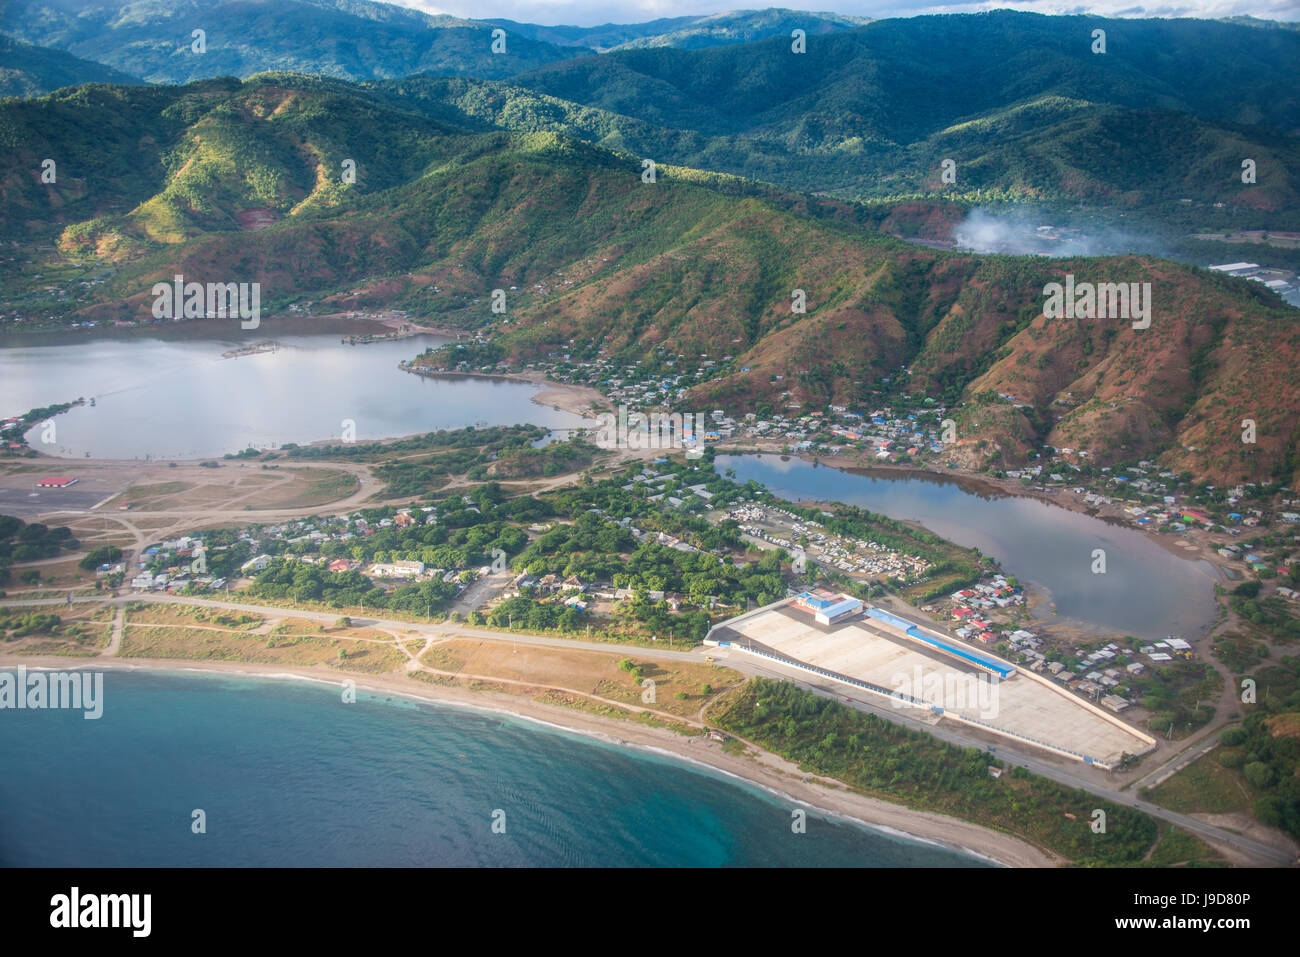 Aerial of Dili, East Timor, Southeast Asia, Asia - Stock Image